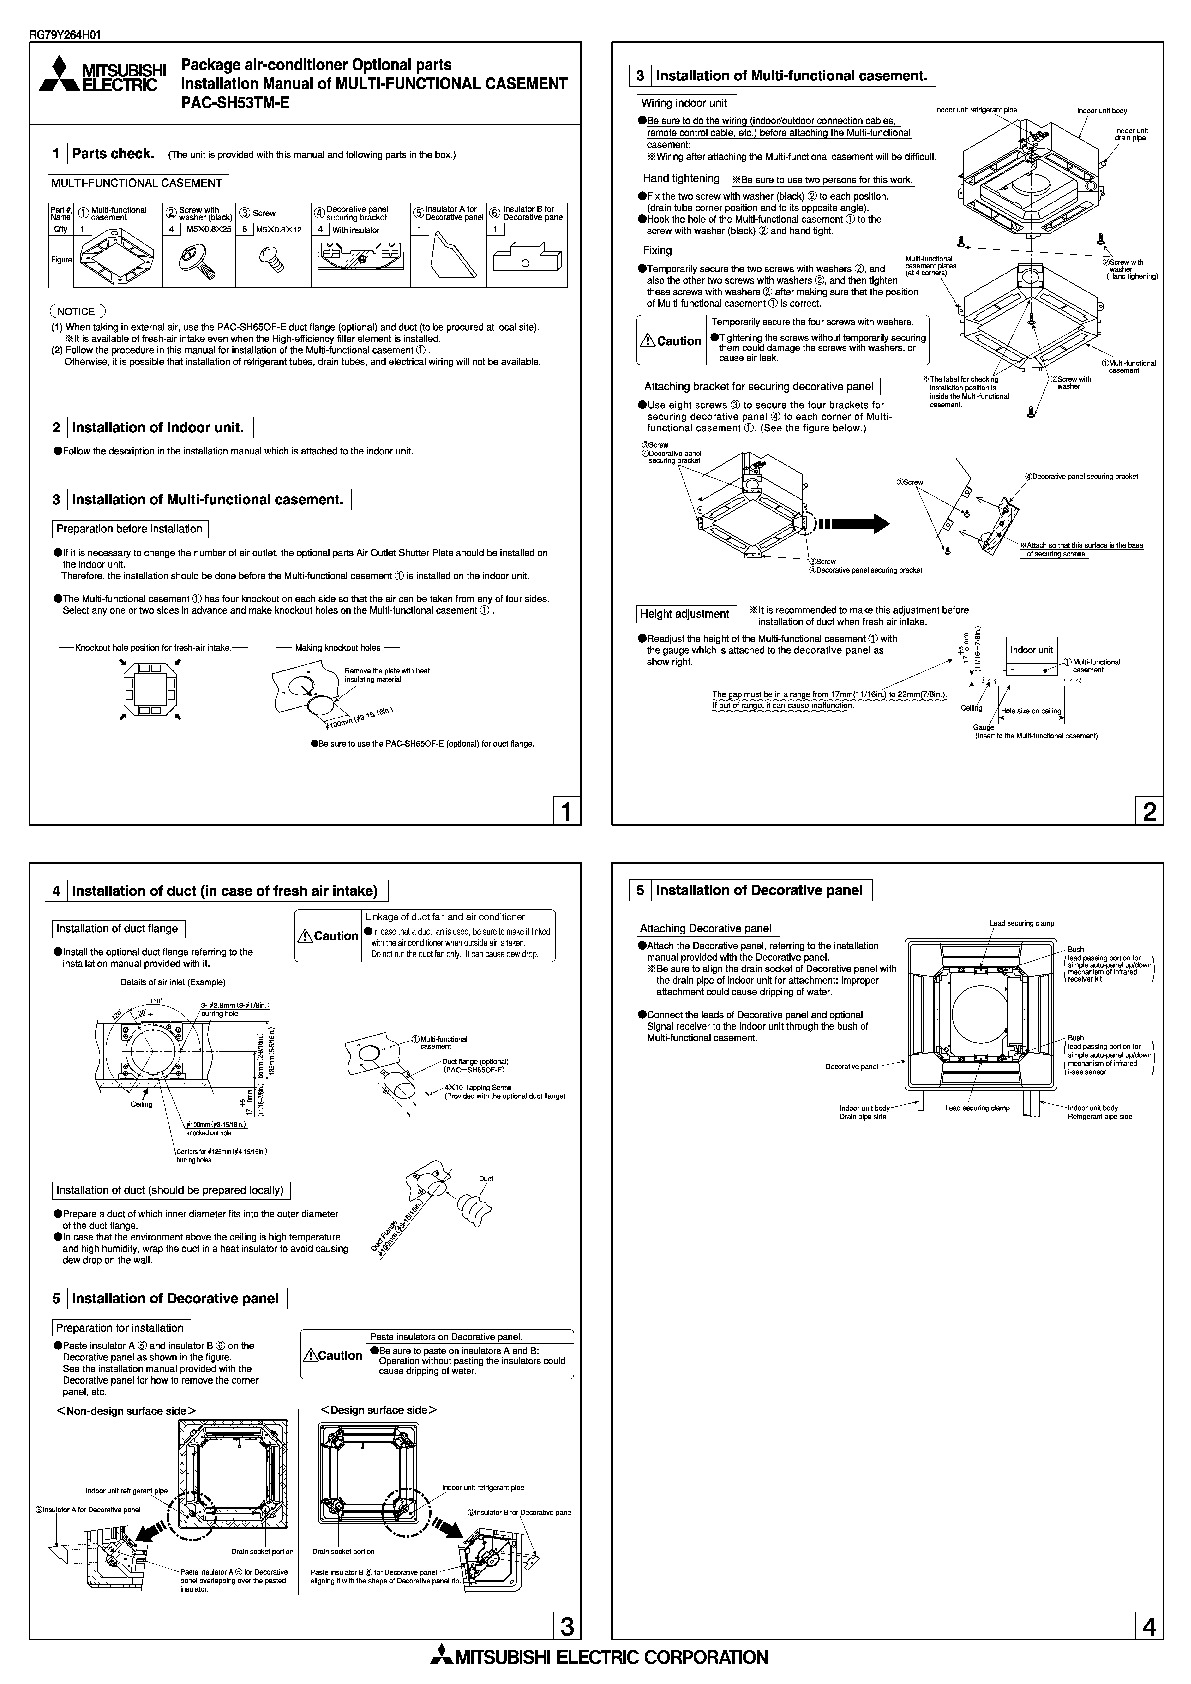 Mitsubishi PAC SH53TM E Air Conditioner Owners Installation Manual 1 sauermann si wiring diagram mitsubishi mitsubishi wiring diagram Sauermann Si 30 Installation Manual at gsmx.co